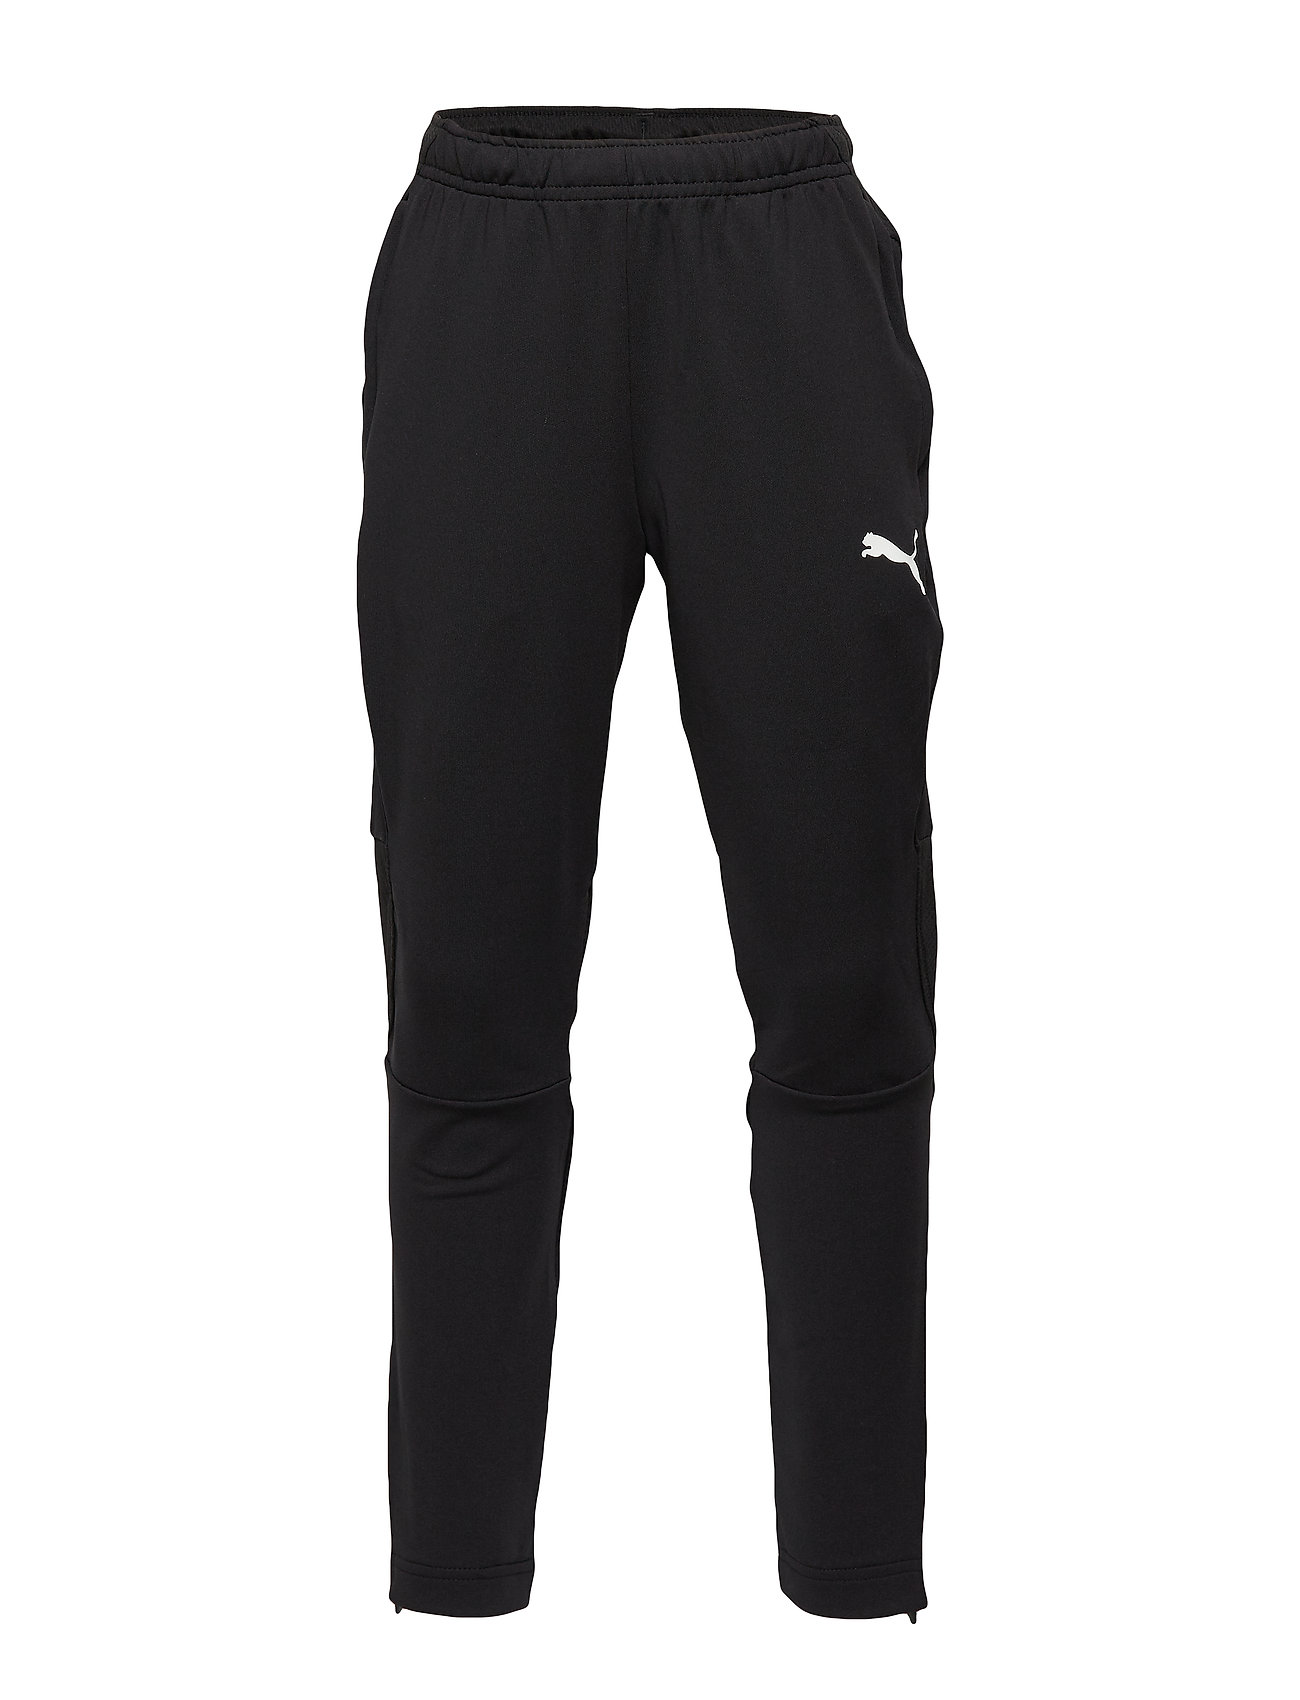 PUMA LIGA Training Pants Pro Jr - PUMA BLACK-PUMA WHITE